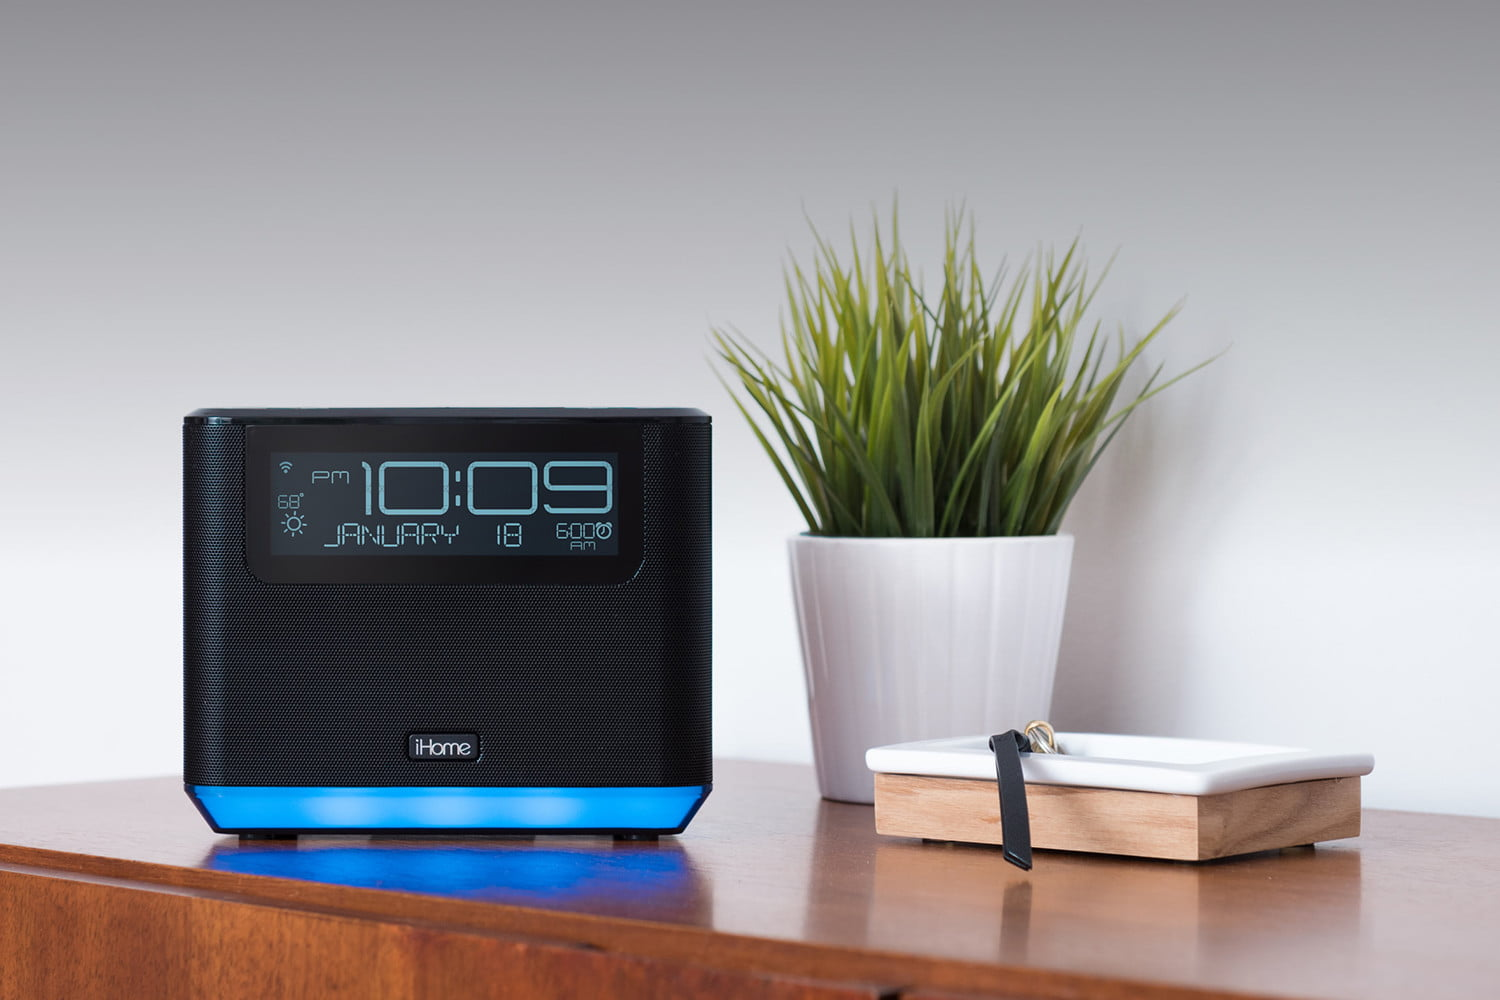 Admirable Ihome Introduces New Lineup Of Smart Alarm Clocks At Ces Download Free Architecture Designs Rallybritishbridgeorg